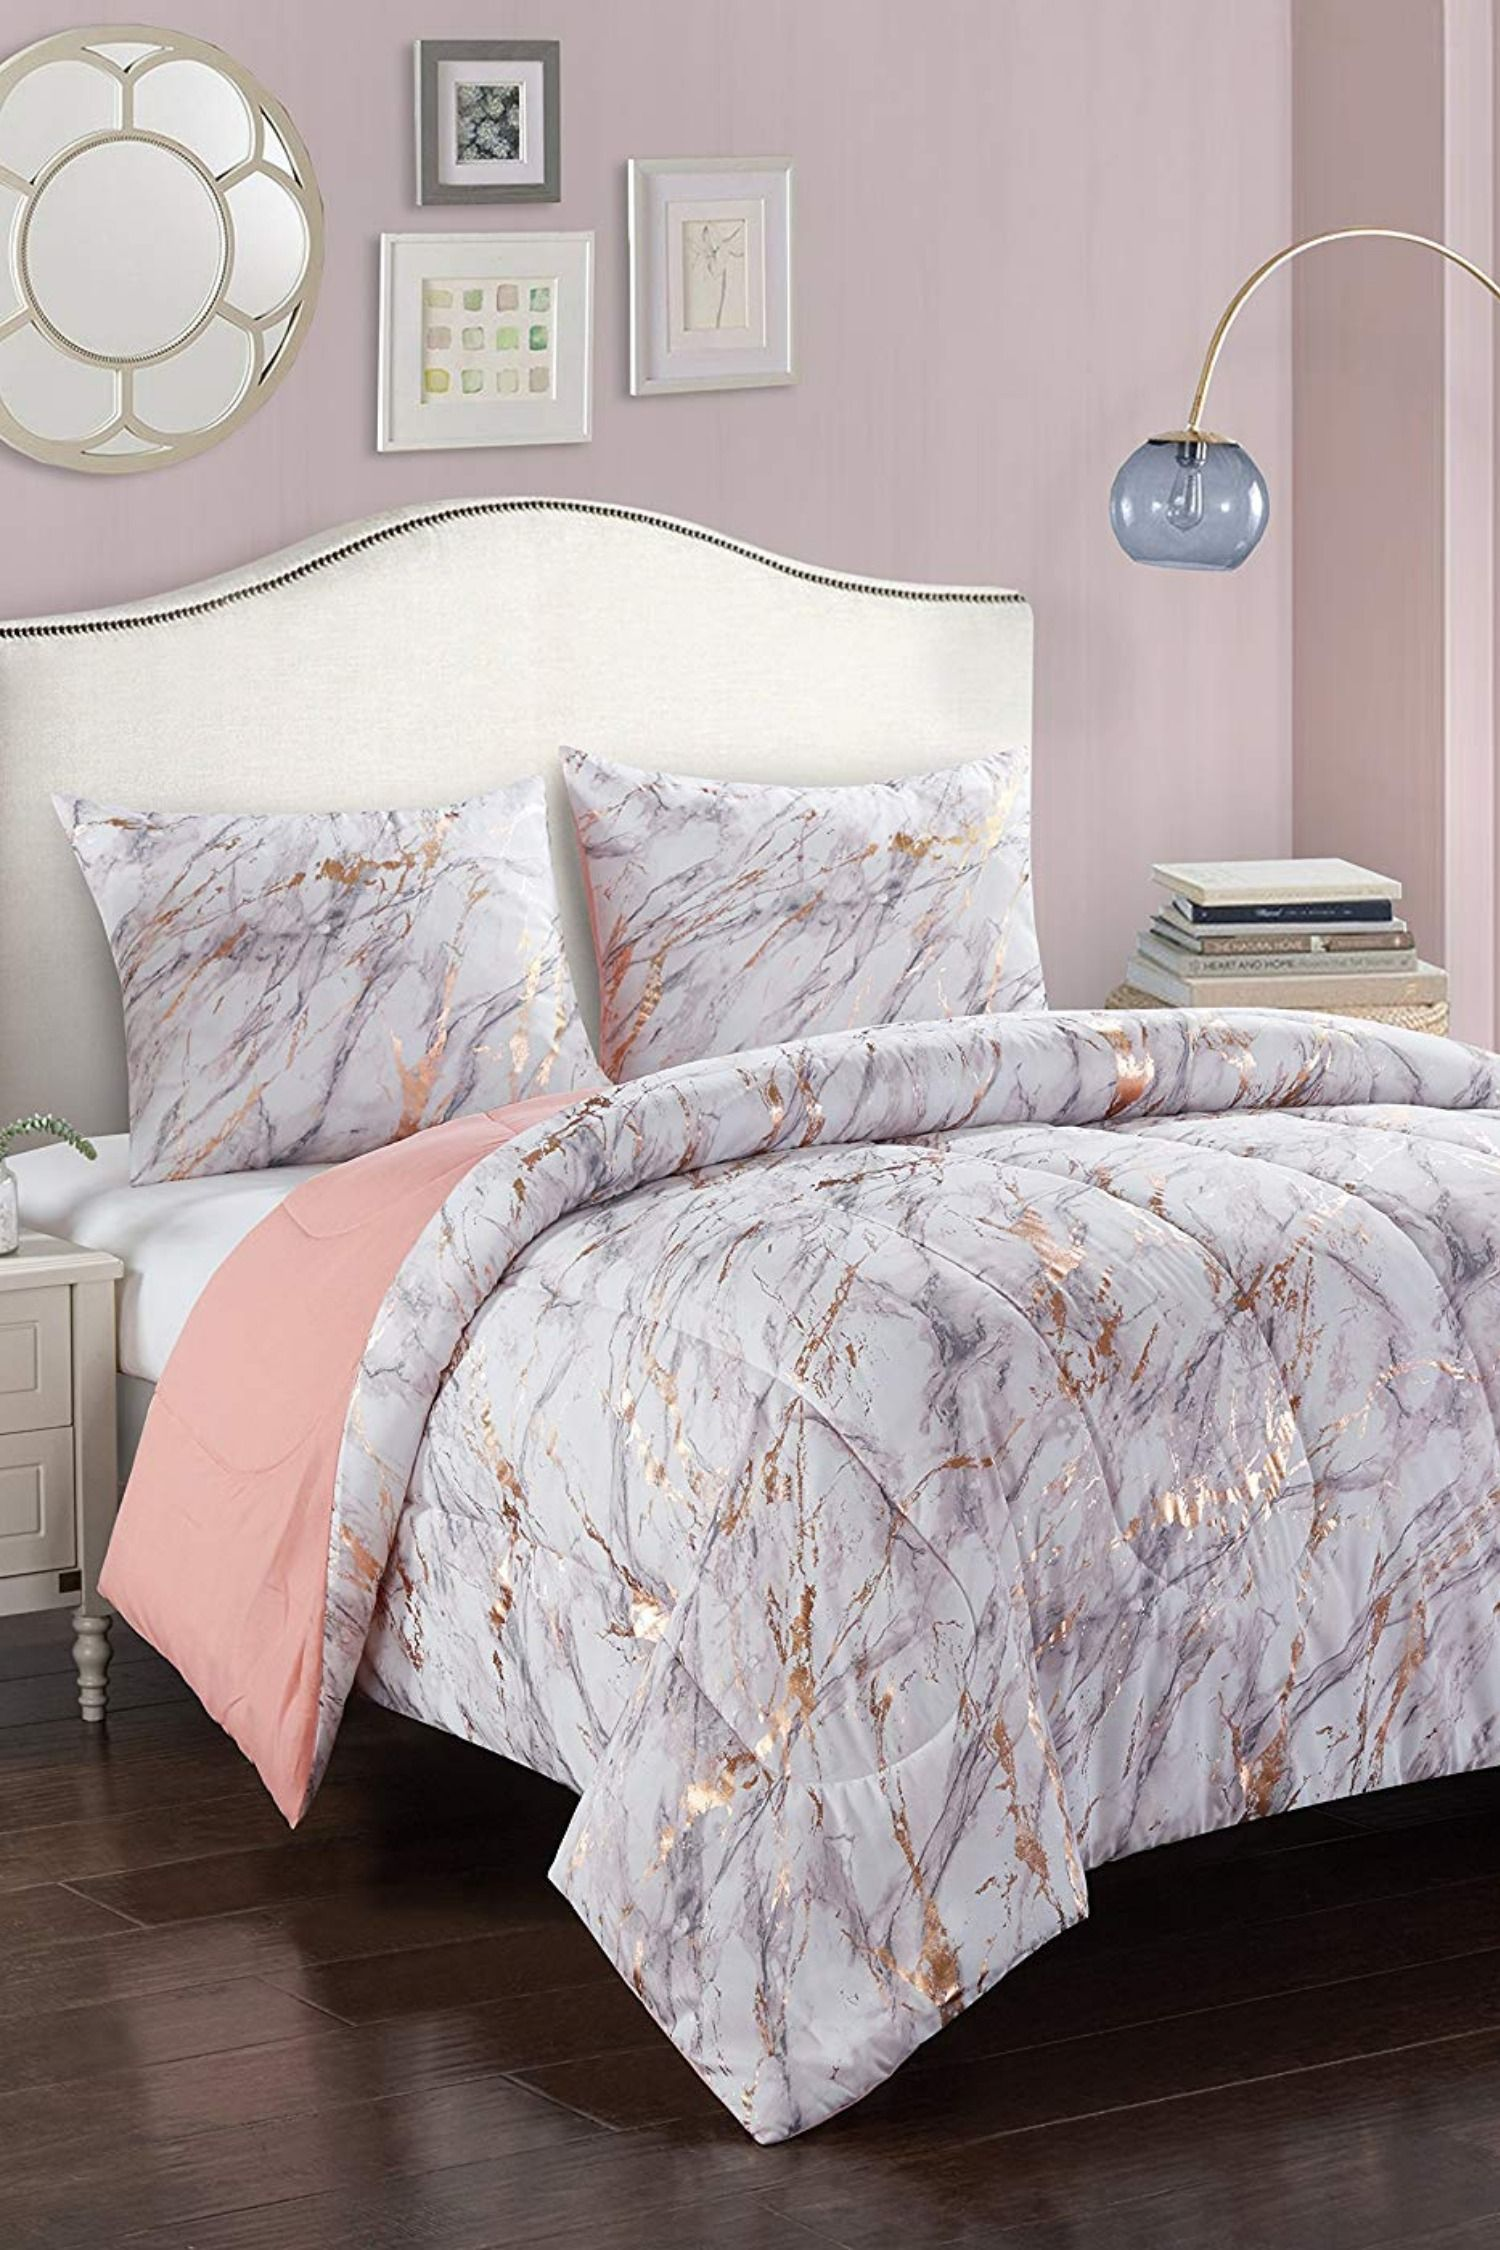 Best bedding comforter sets collection, Buy only the best